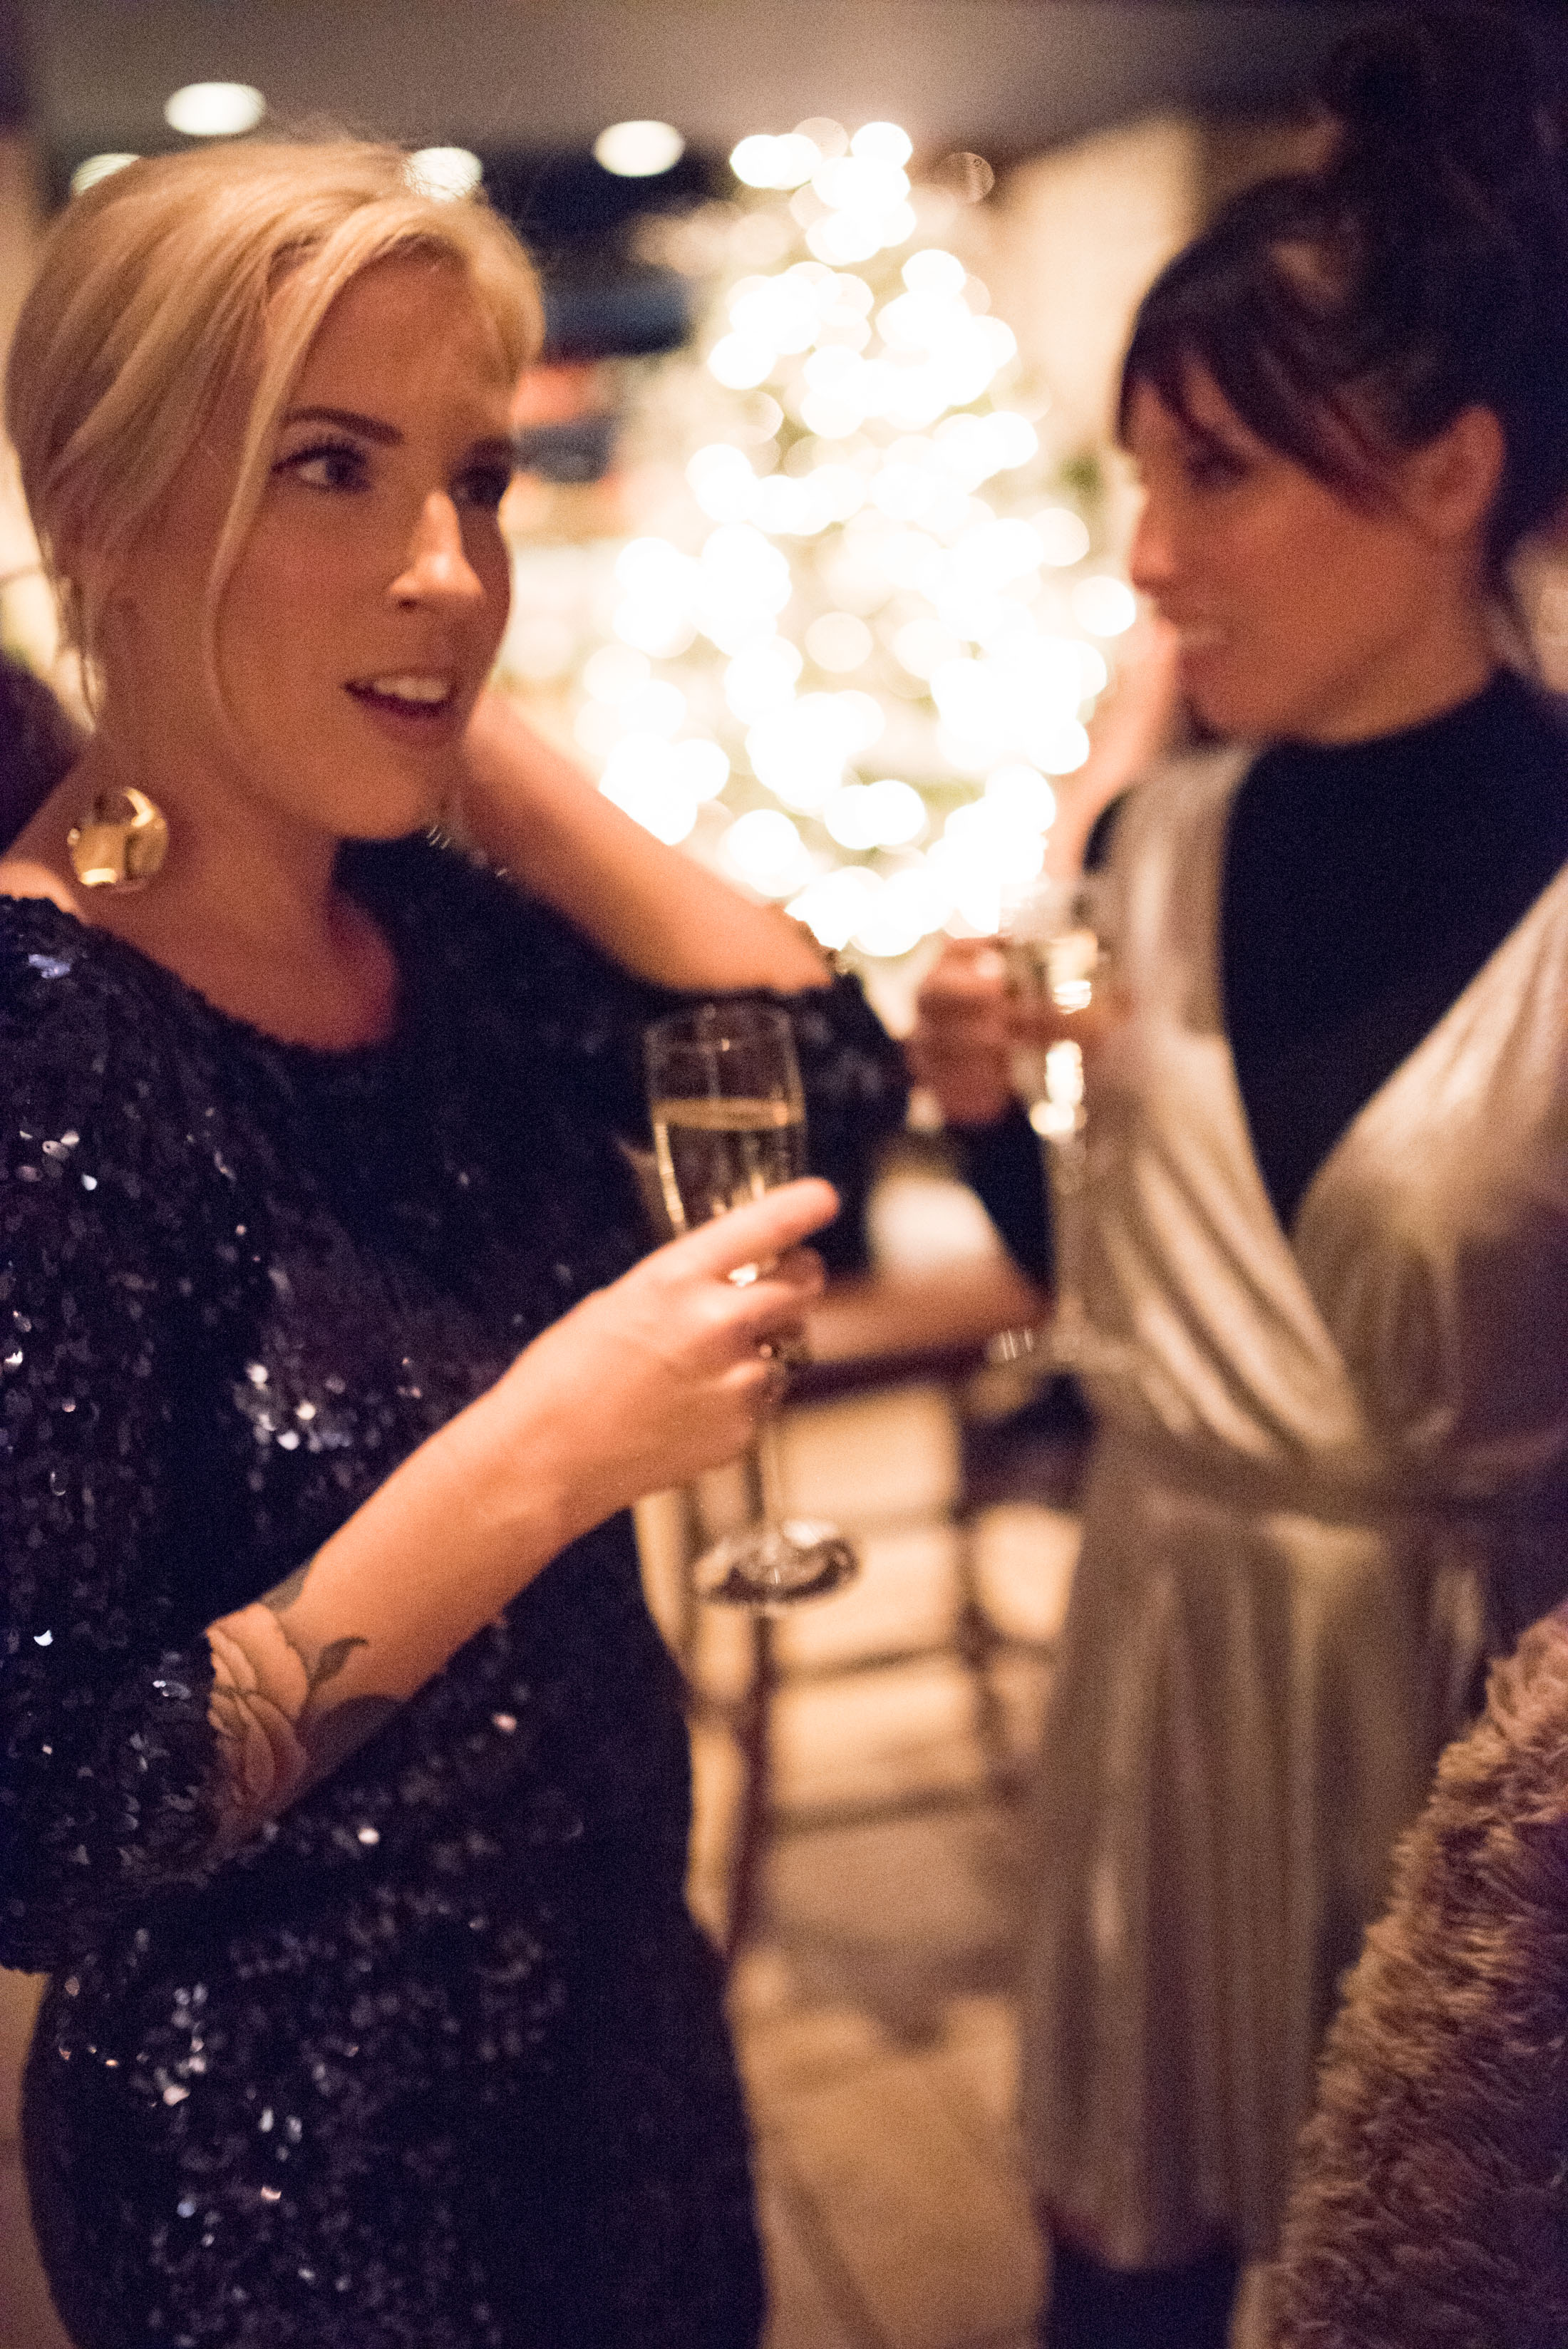 It's almost NYE! Grab your guys & your girls, add some sequins & go. There may or may not be a turtleneck mixed in here...(we like it that way).